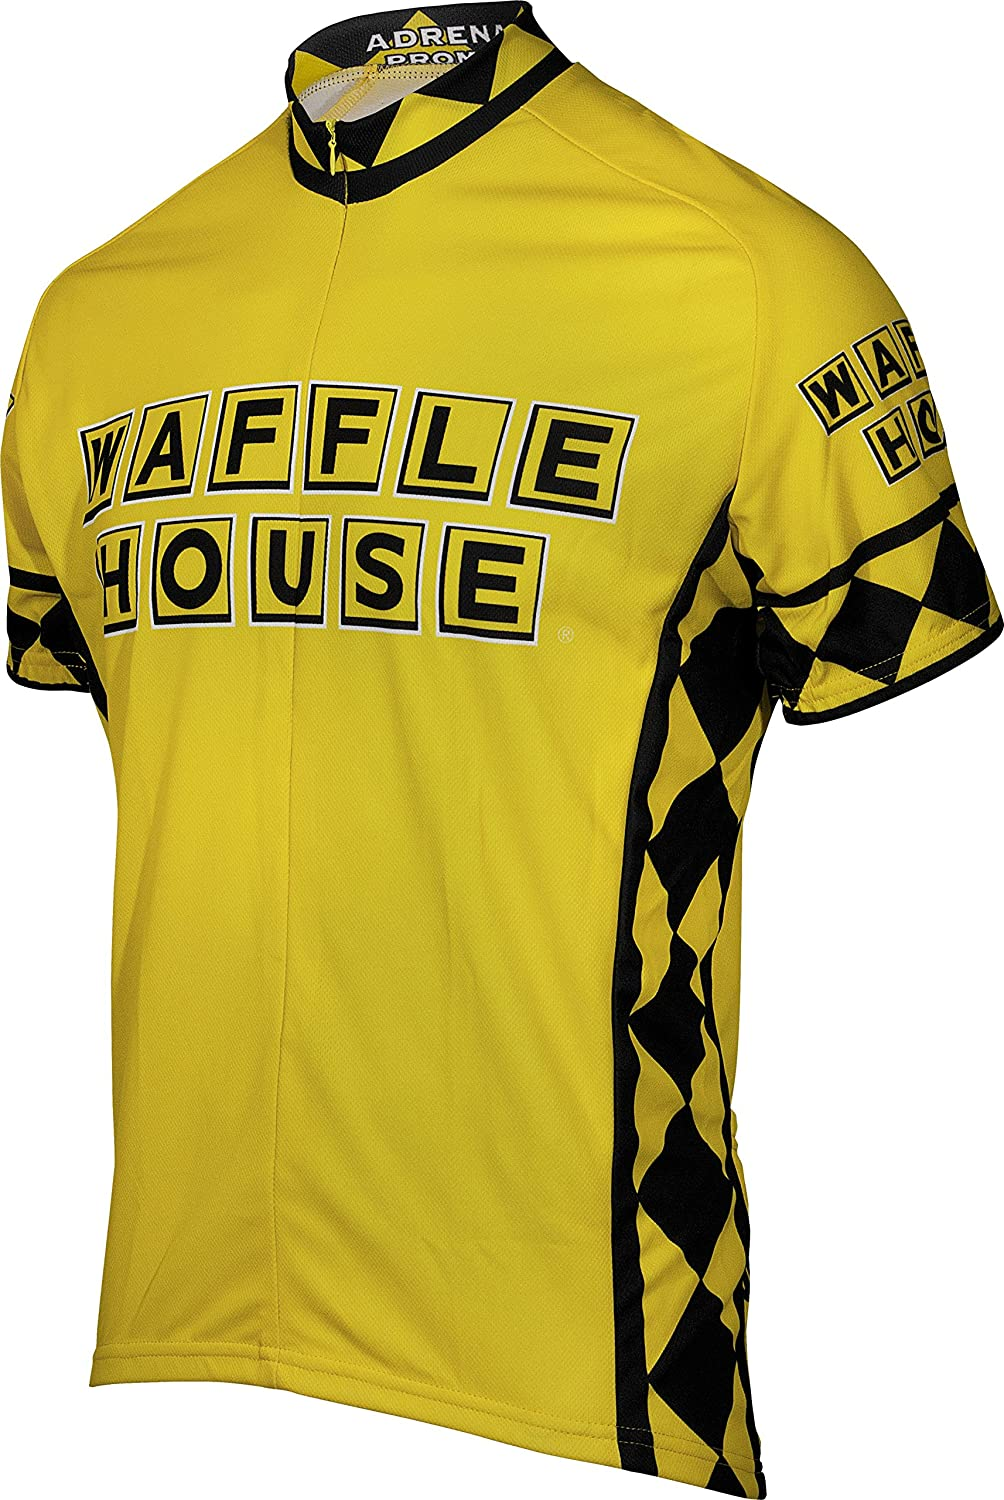 Adrenaline Promotions NCAA Waffle House Road Jersey